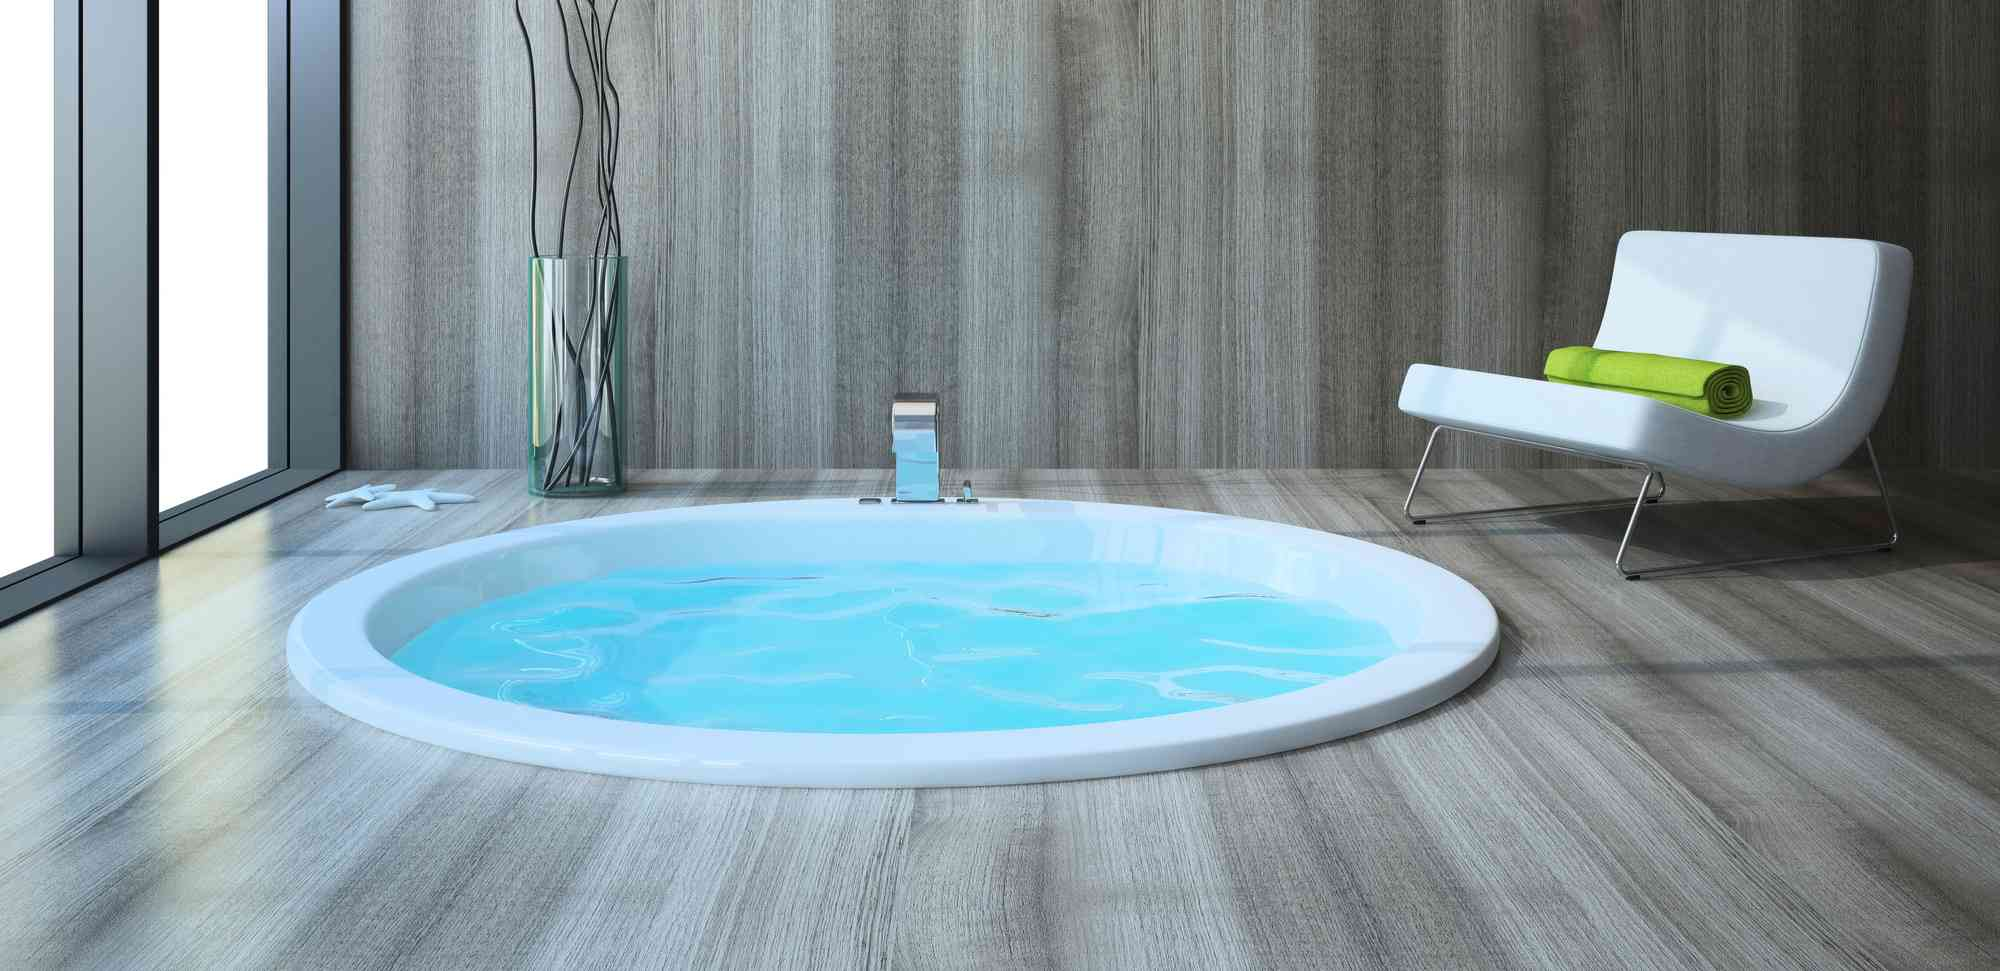 Reasons To Install Your Hot Tub Inside Jacuzzi Outdoor Living